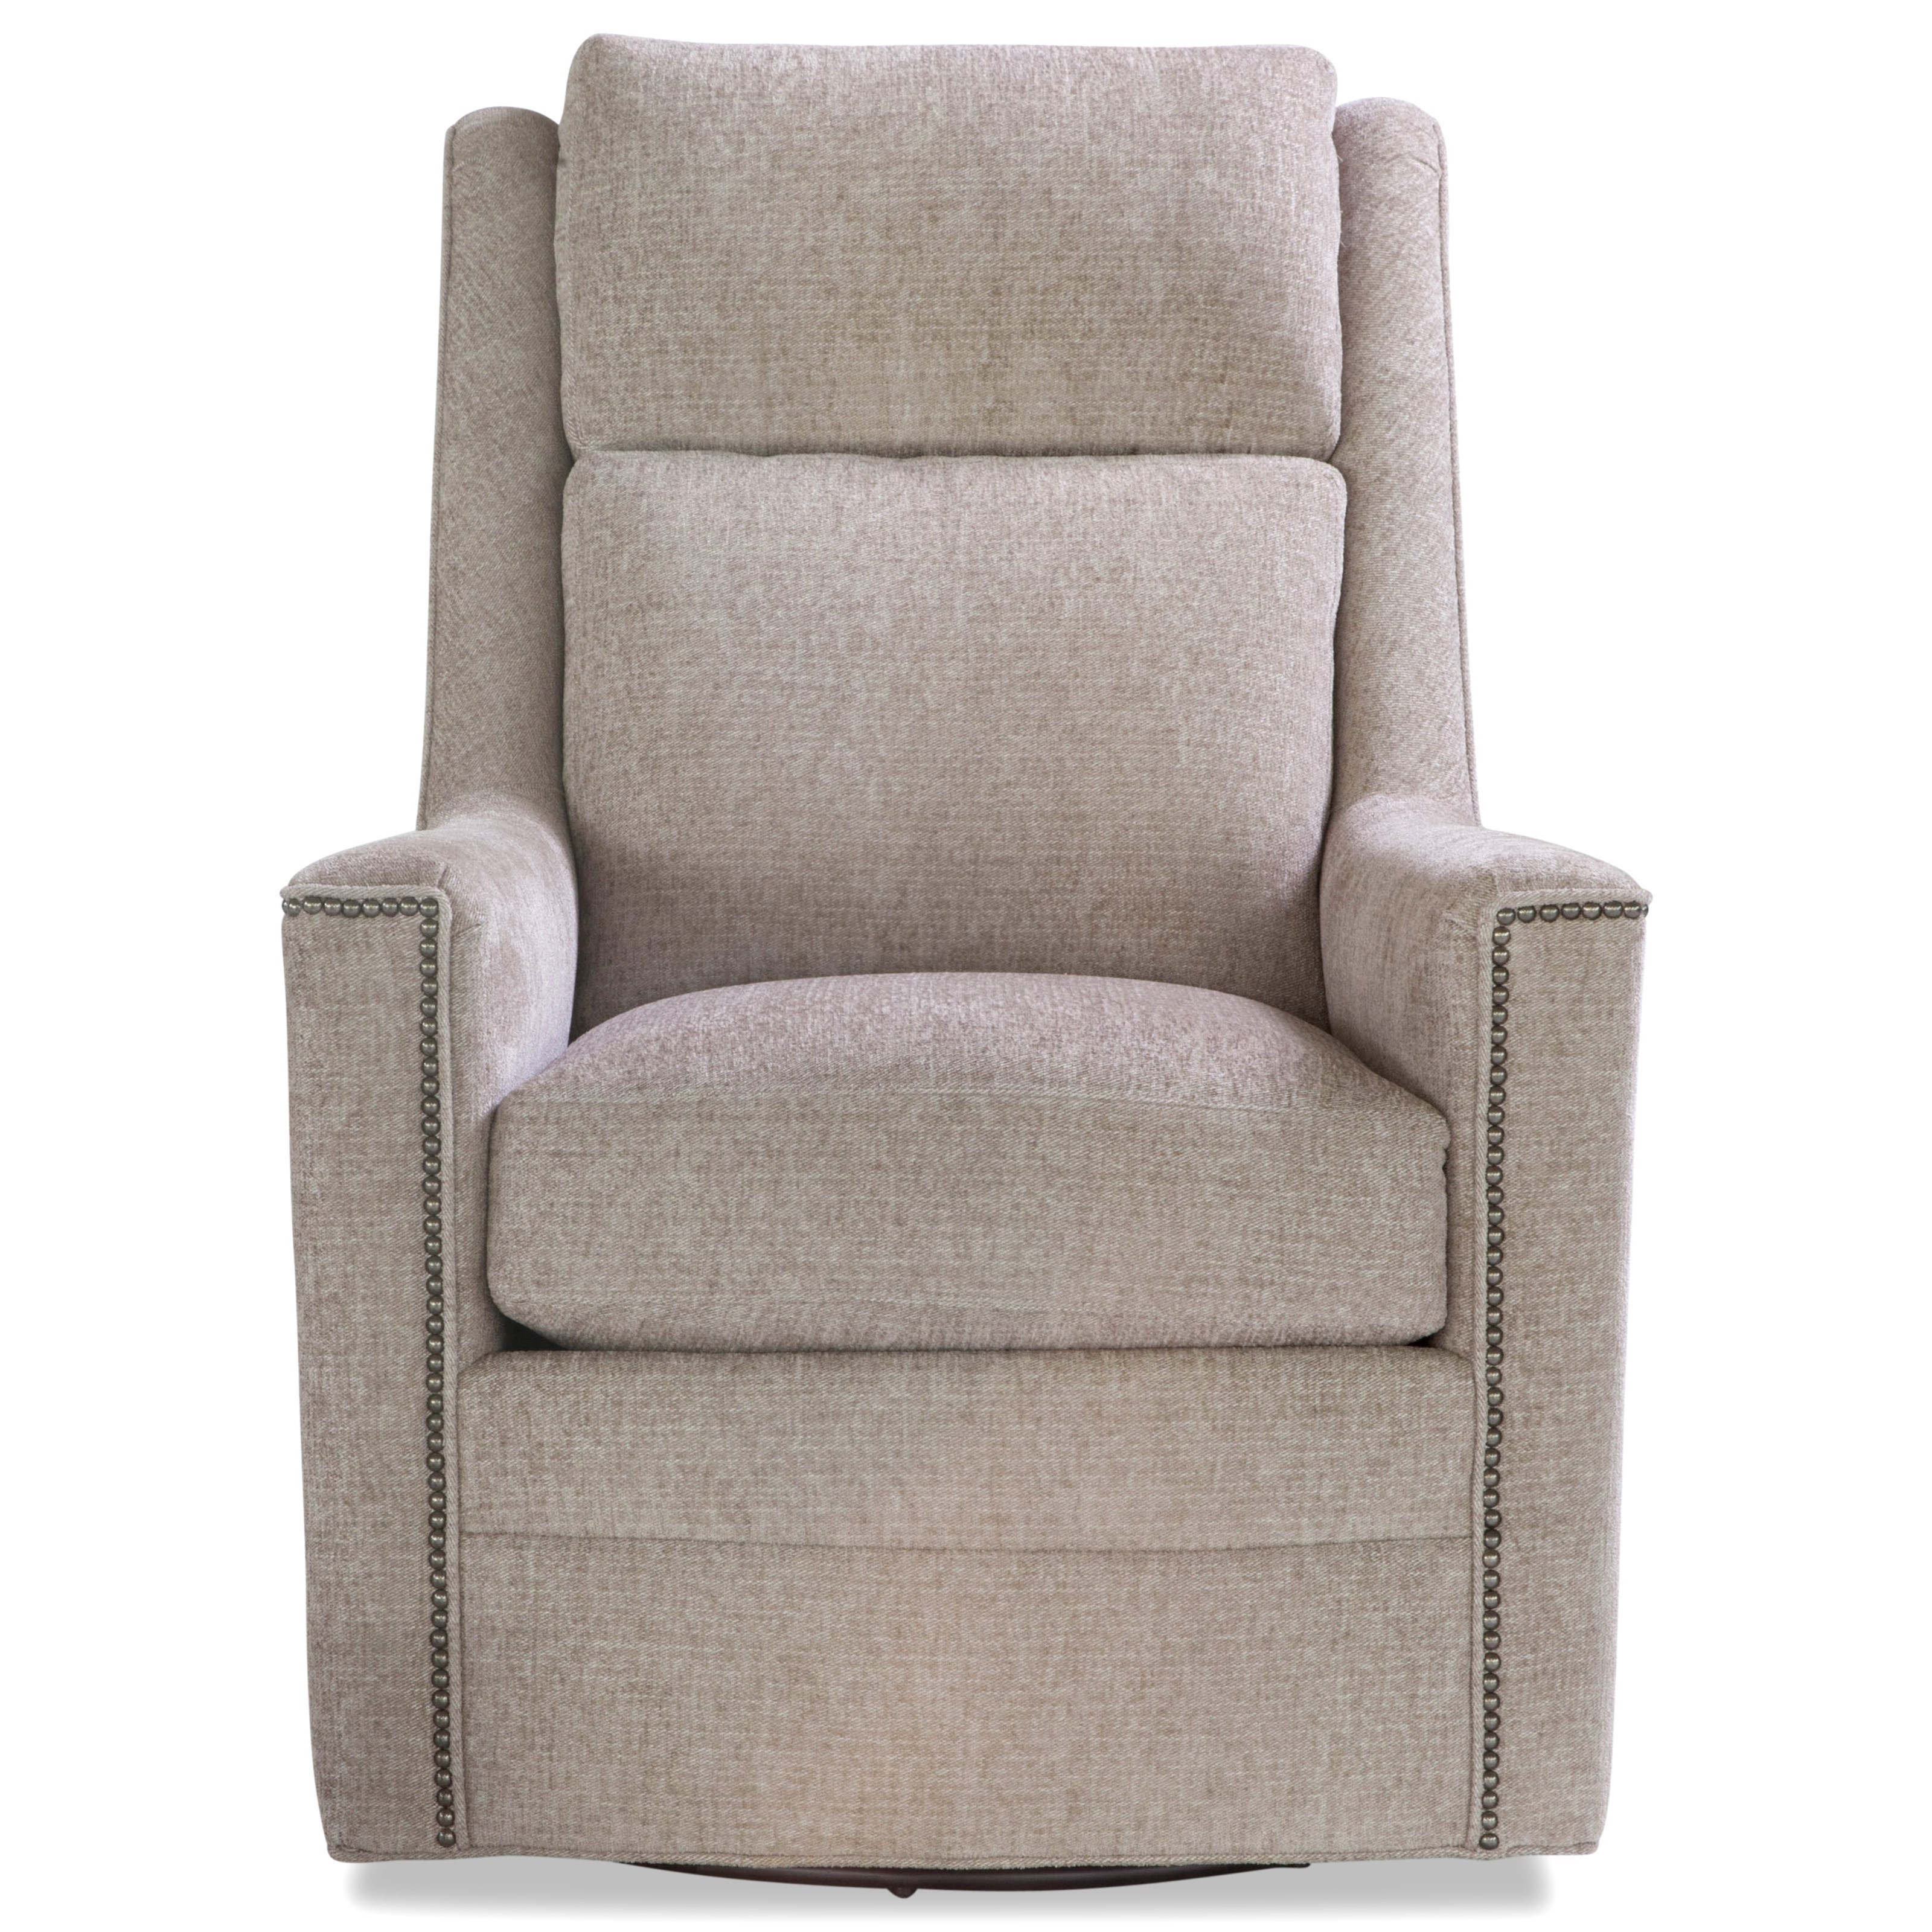 Huntington House Furniture Quality Huntington House 7286 Casual Upholstered Swivel Chair With